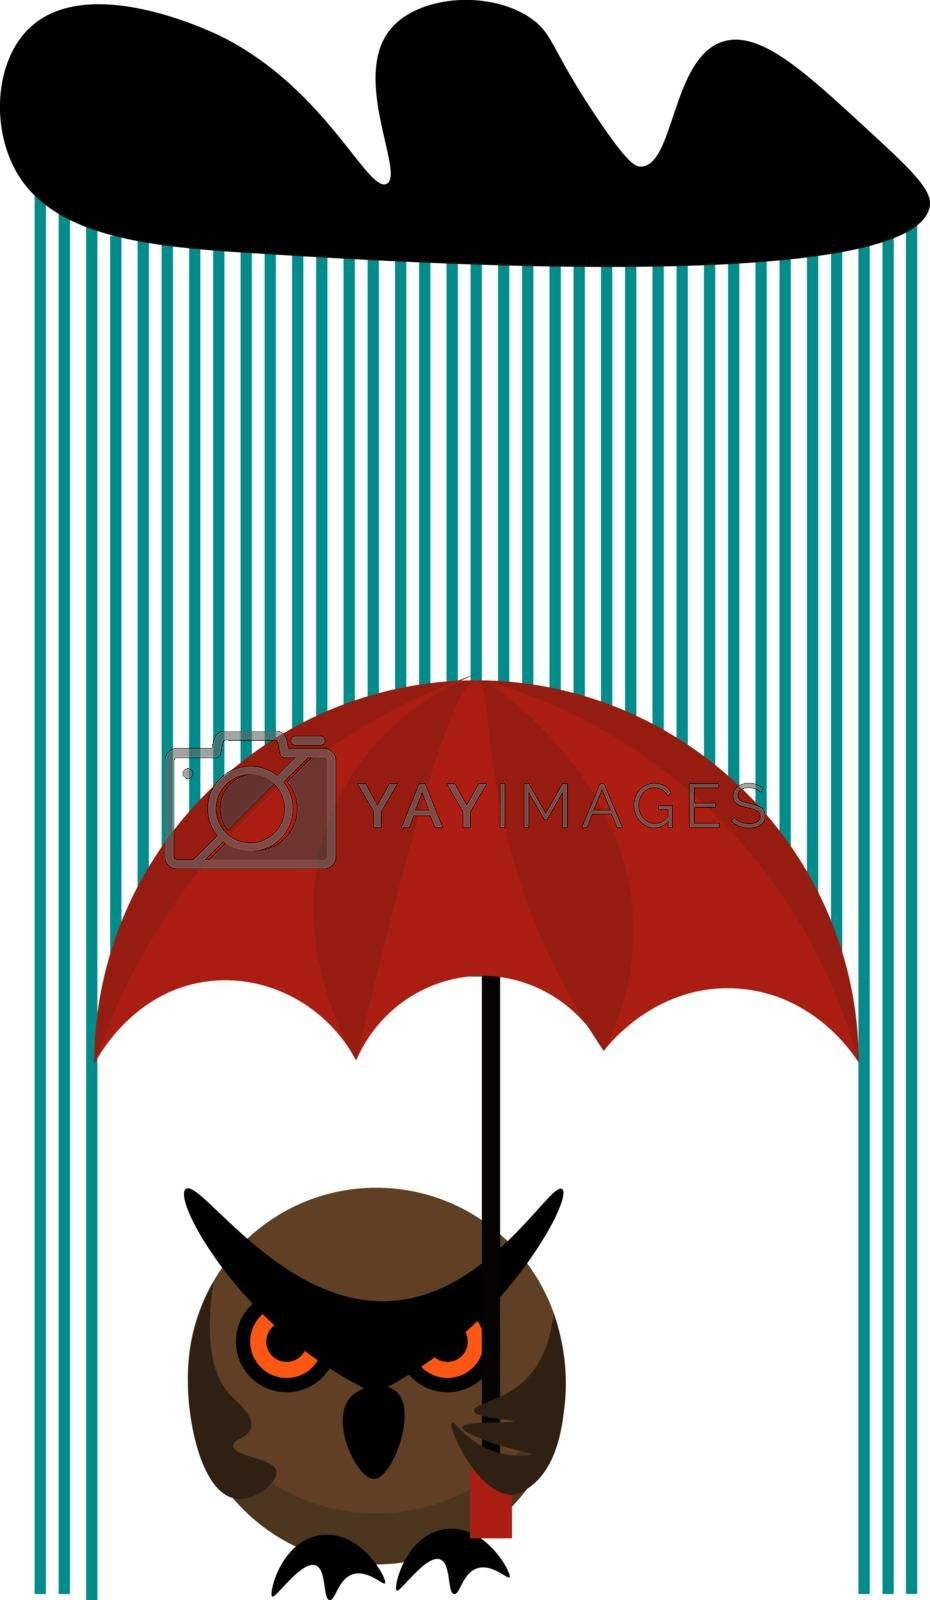 Royalty free image of Clipart of an owl holding an umbrella on a rainy day vector or c by Morphart